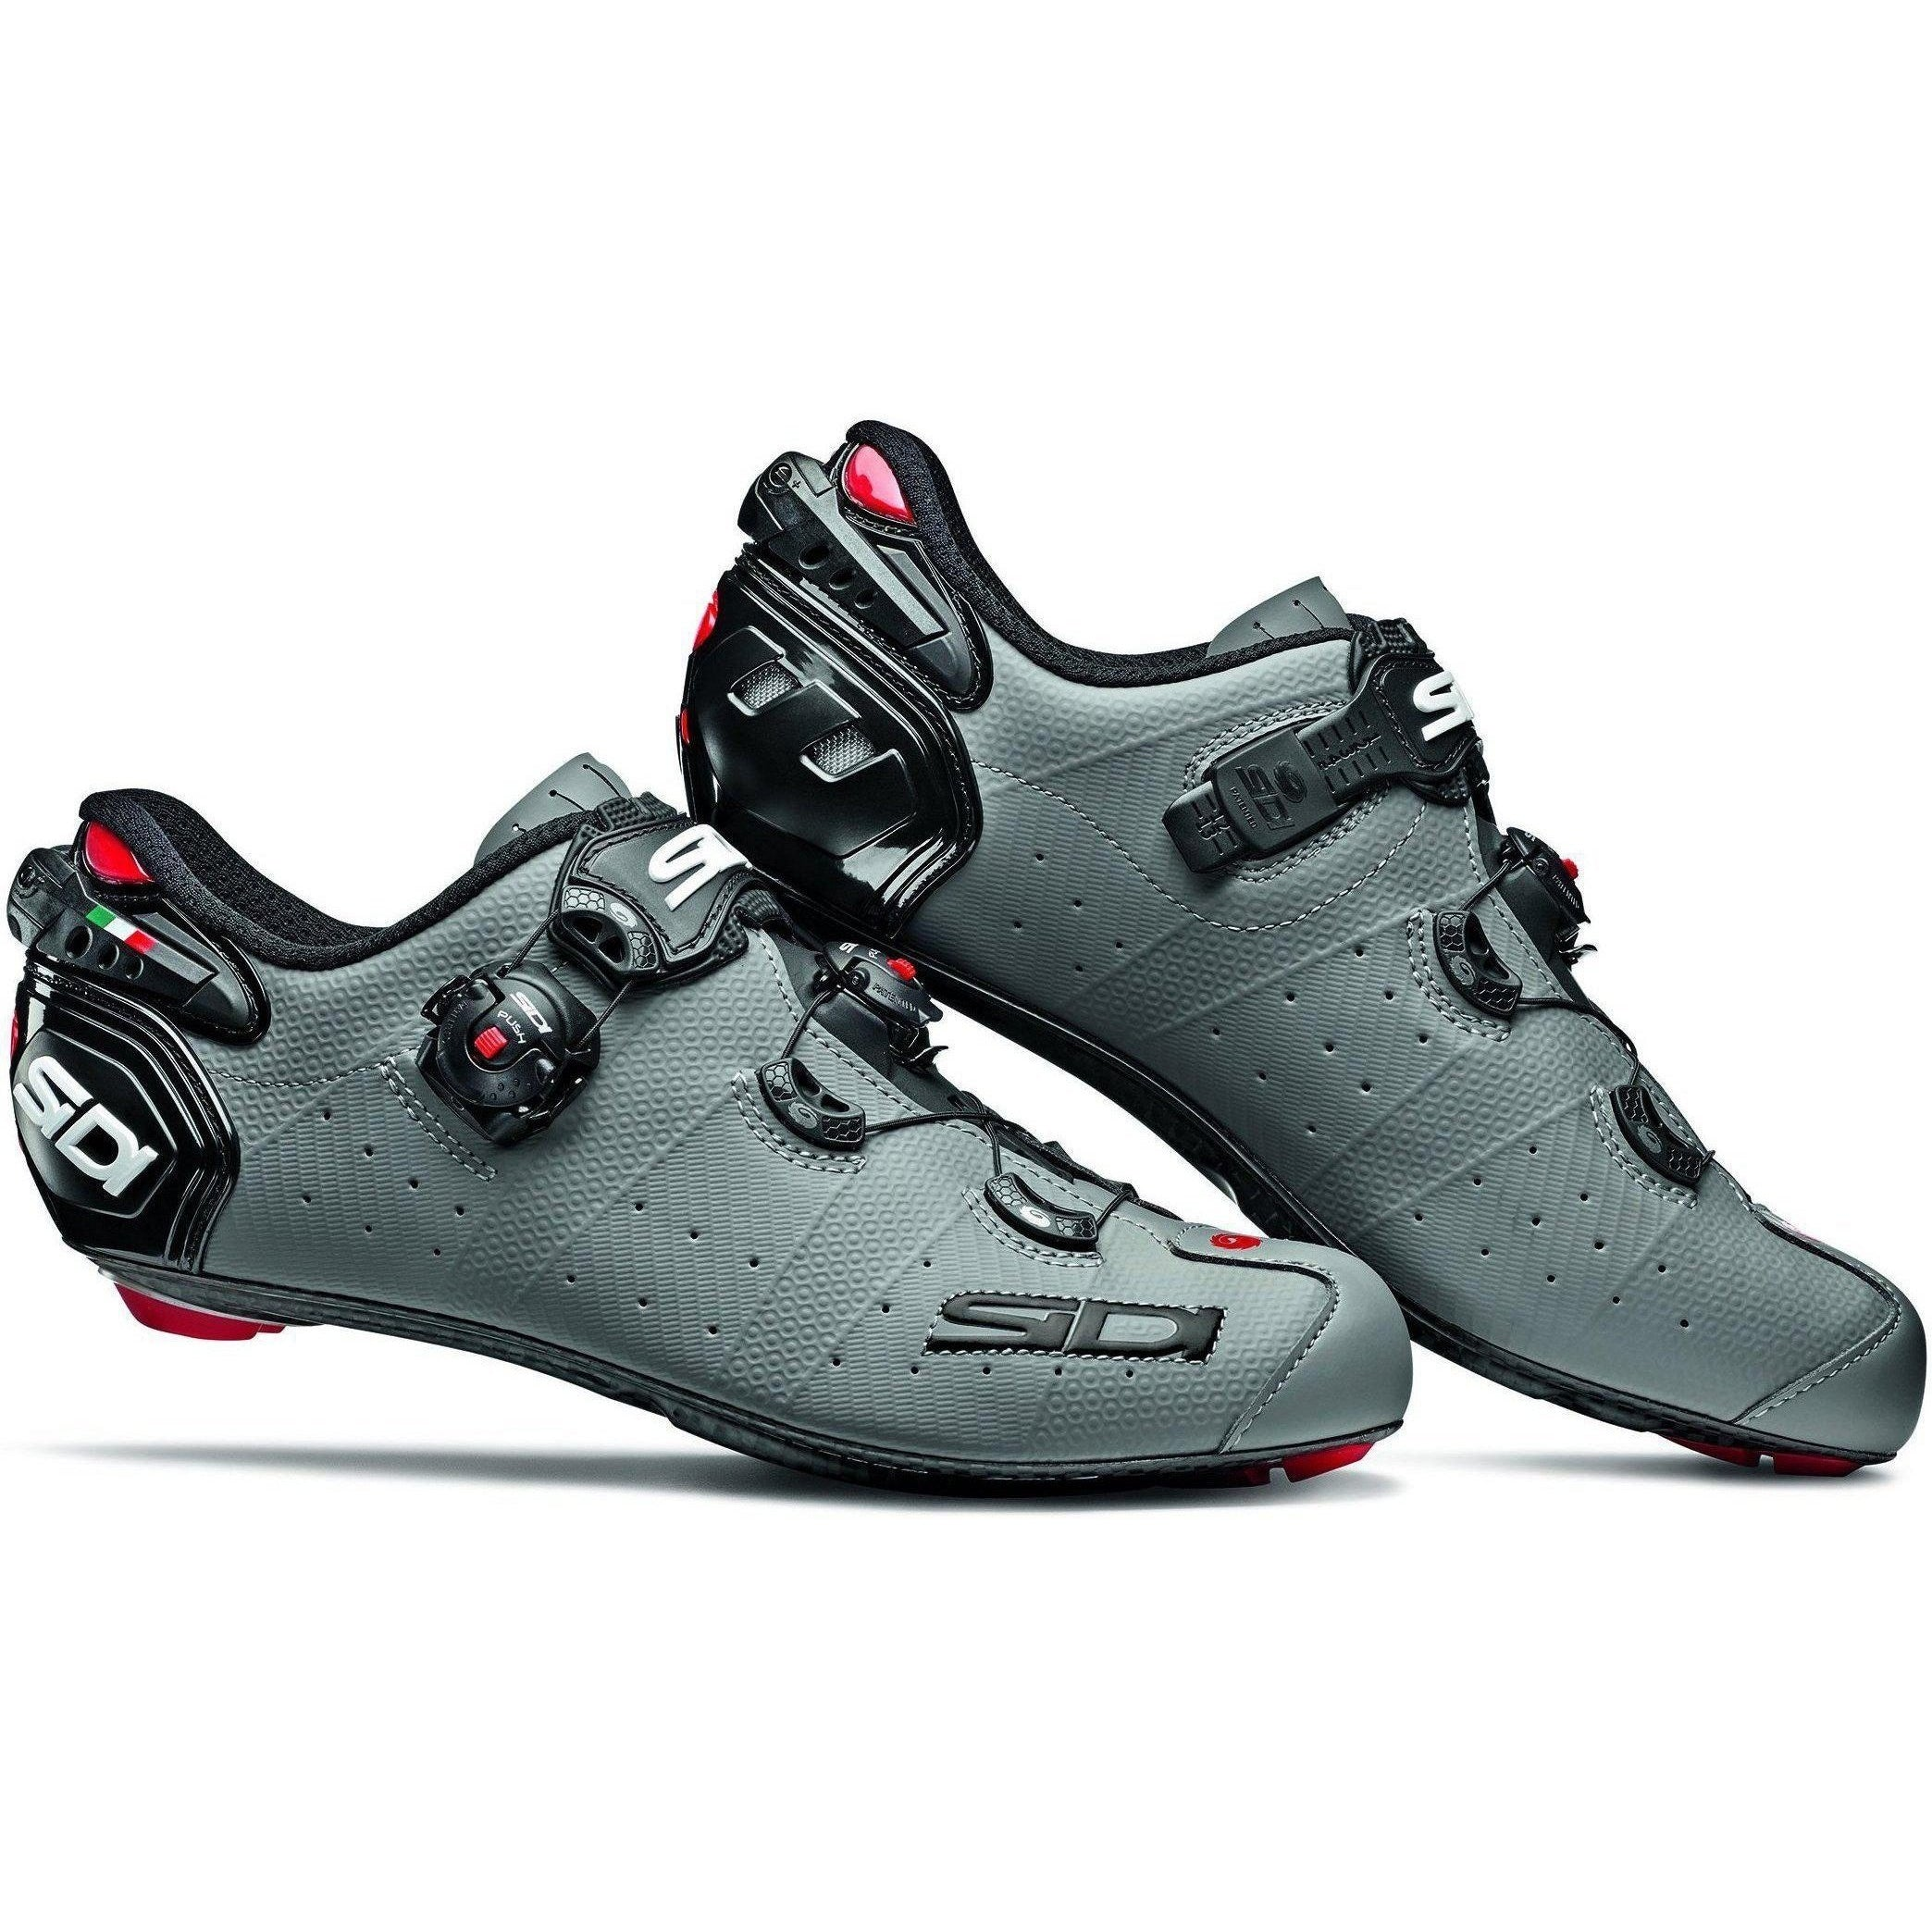 Sidi-Sidi Wire 2 Carbon Road Shoes - Matt-Matt Grey/Black-38-SIWIRE2CMATGROPNE38-saddleback-elite-performance-cycling